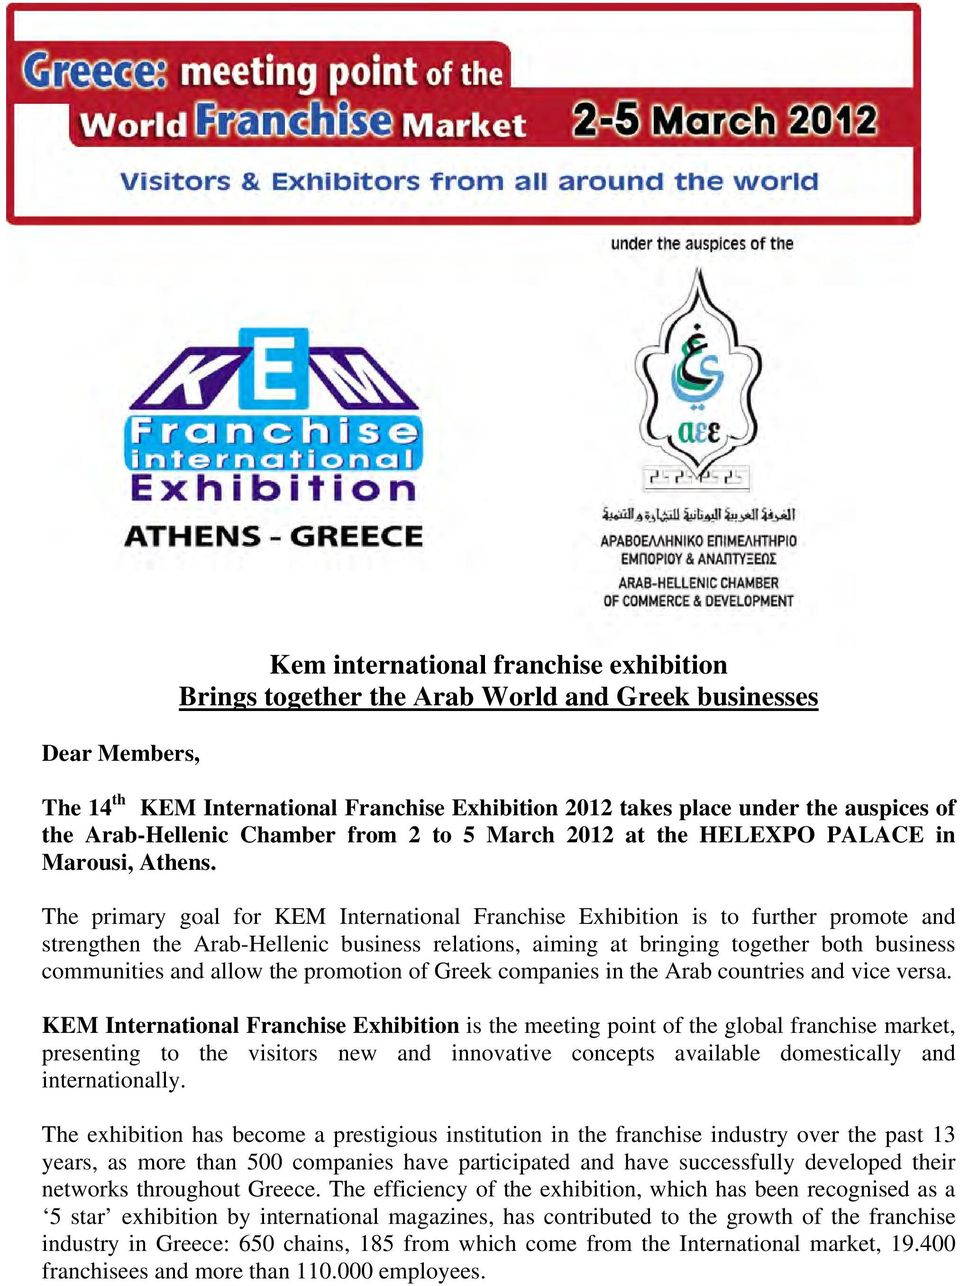 The primary goal for KEM International Franchise Exhibition is to further promote and strengthen the Arab-Hellenic business relations, aiming at bringing together both business communities and allow